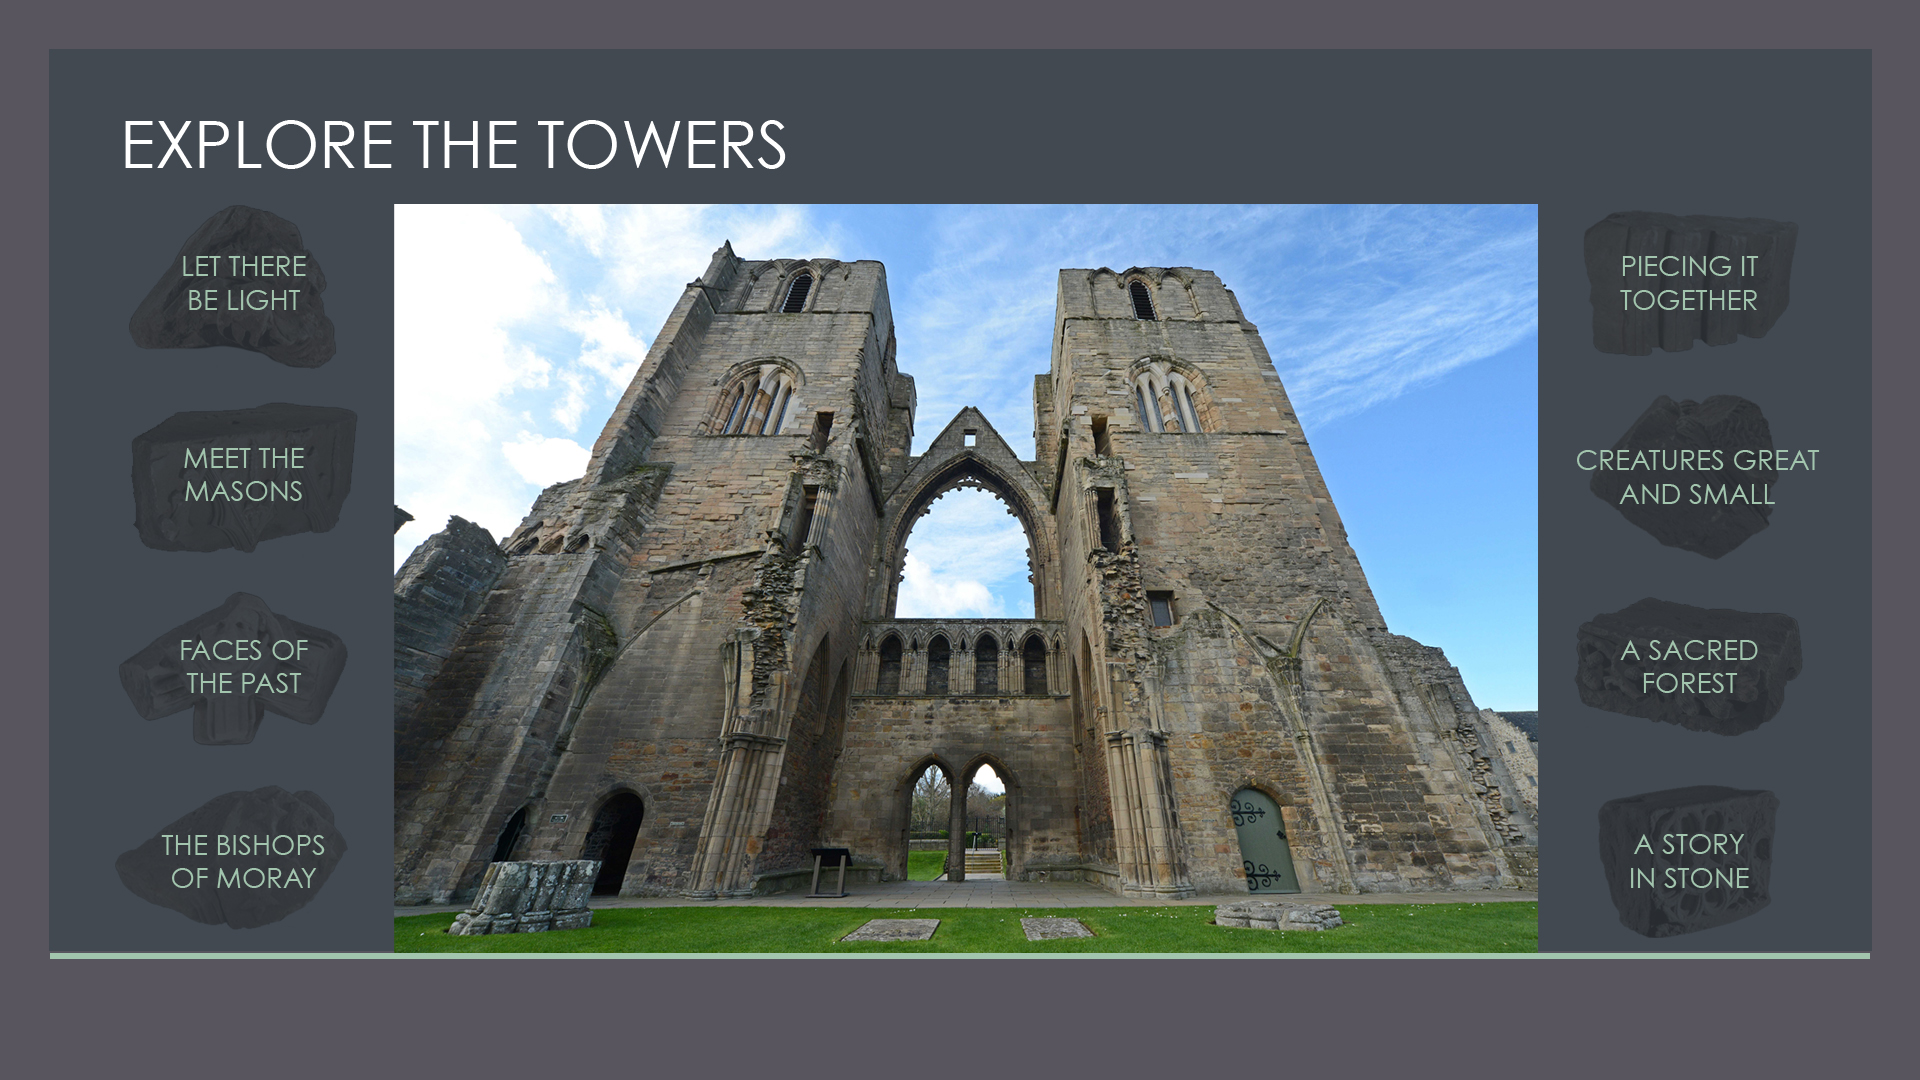 Explore the Towers